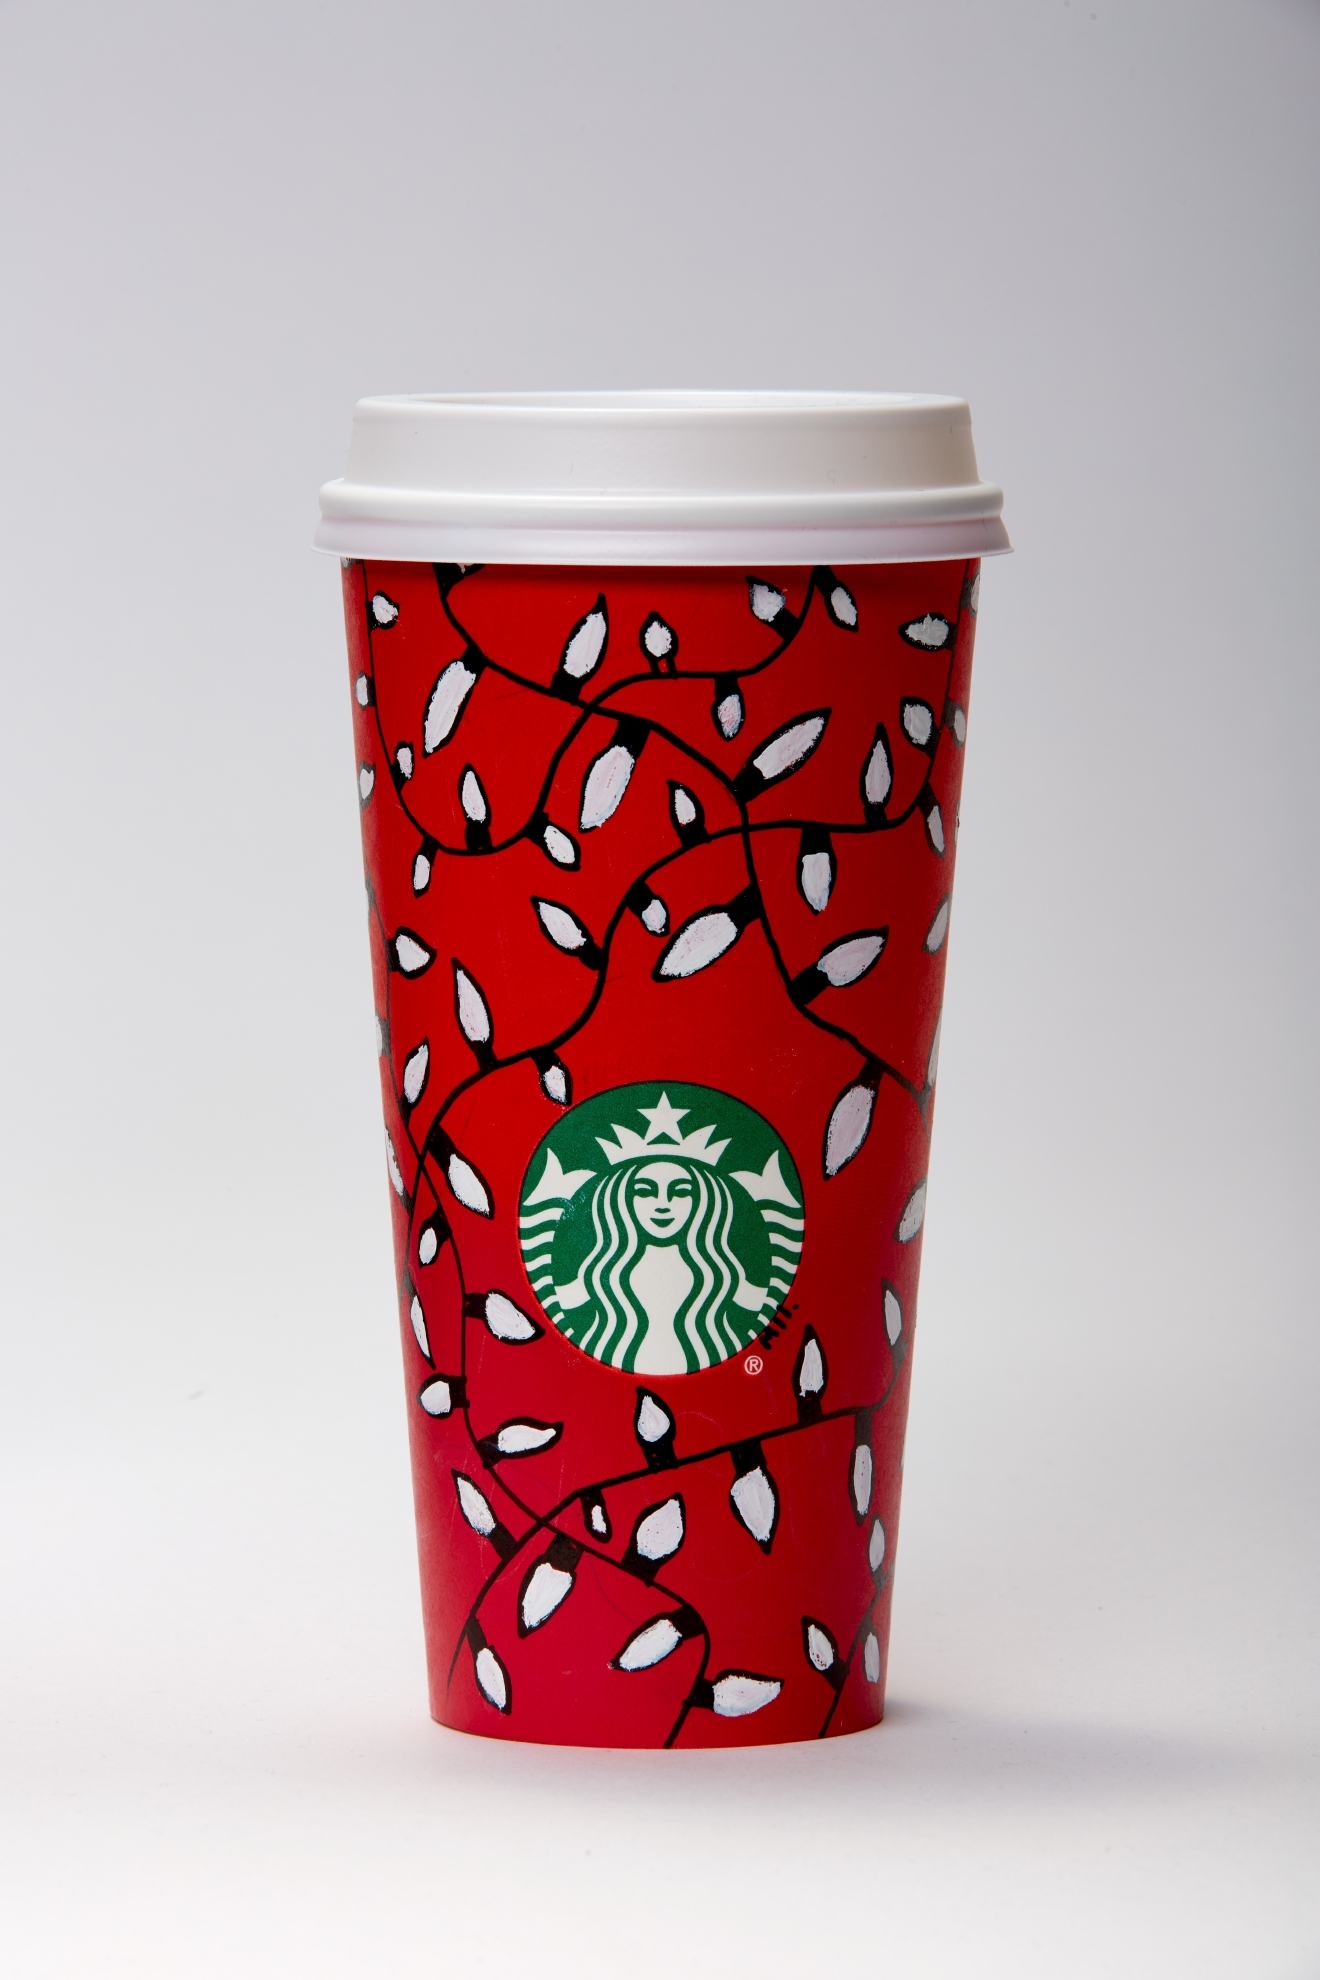 "Red Cup Season is officially here! Regardless of how you felt about the Green Cups, there is little to no way to be upset about the Red Cup designs this year. Why? Well for starters, there are 13 of them! Don't like one? That's ok, you have 12 others to choose from. What's even better is that all 13 of these designs came from customers who submitted them to Starbucks via Instagram. The final 13 designs were chosen from over 1,200 submissions, and come from six different countries. ""We were surprised and inspired by the amount of incredible art submitted by our customers. The designs were beautiful, expressive and engaging,"" said Dena Blevins, creative director, Starbucks Global Creative Studio. Red cups are available in Starbucks stores starting November 10, 2016. (Image: Starbucks)"